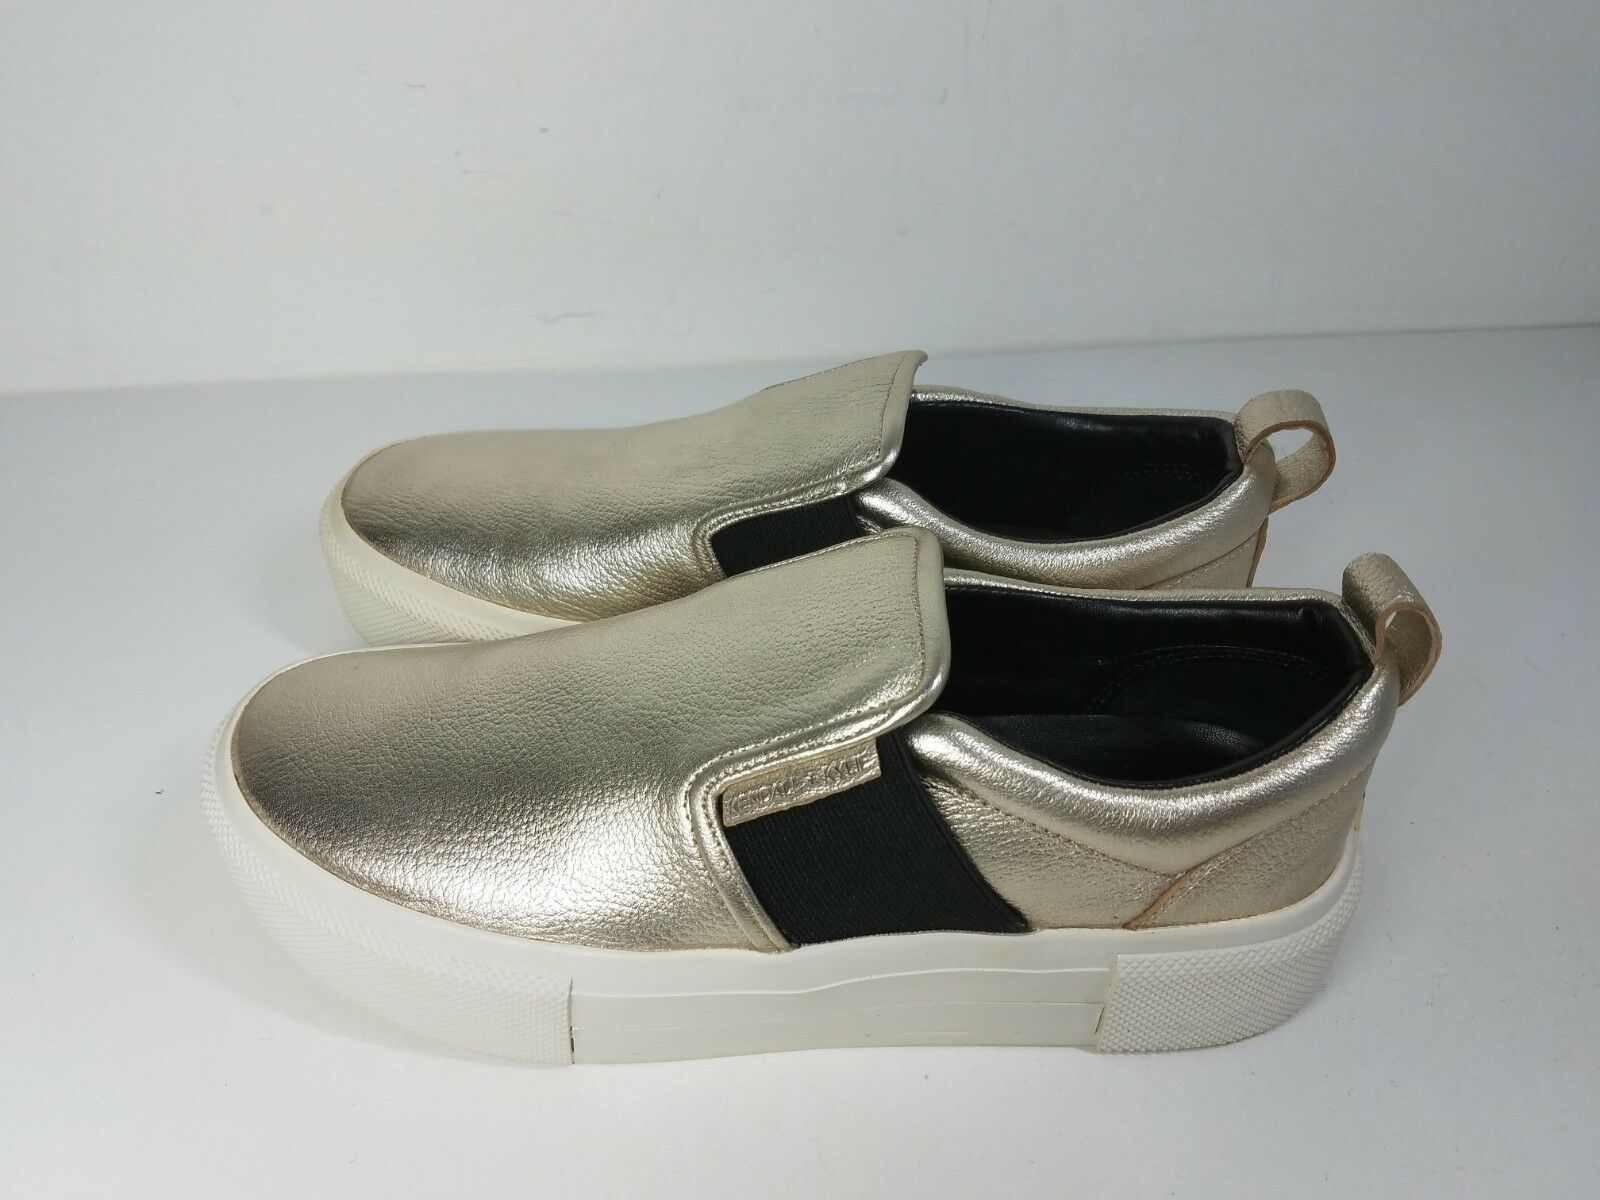 140 size 7.5 KENDALL + + + KYLIE Tenley gold Leather Platform Sneakers Womens shoes c401f2